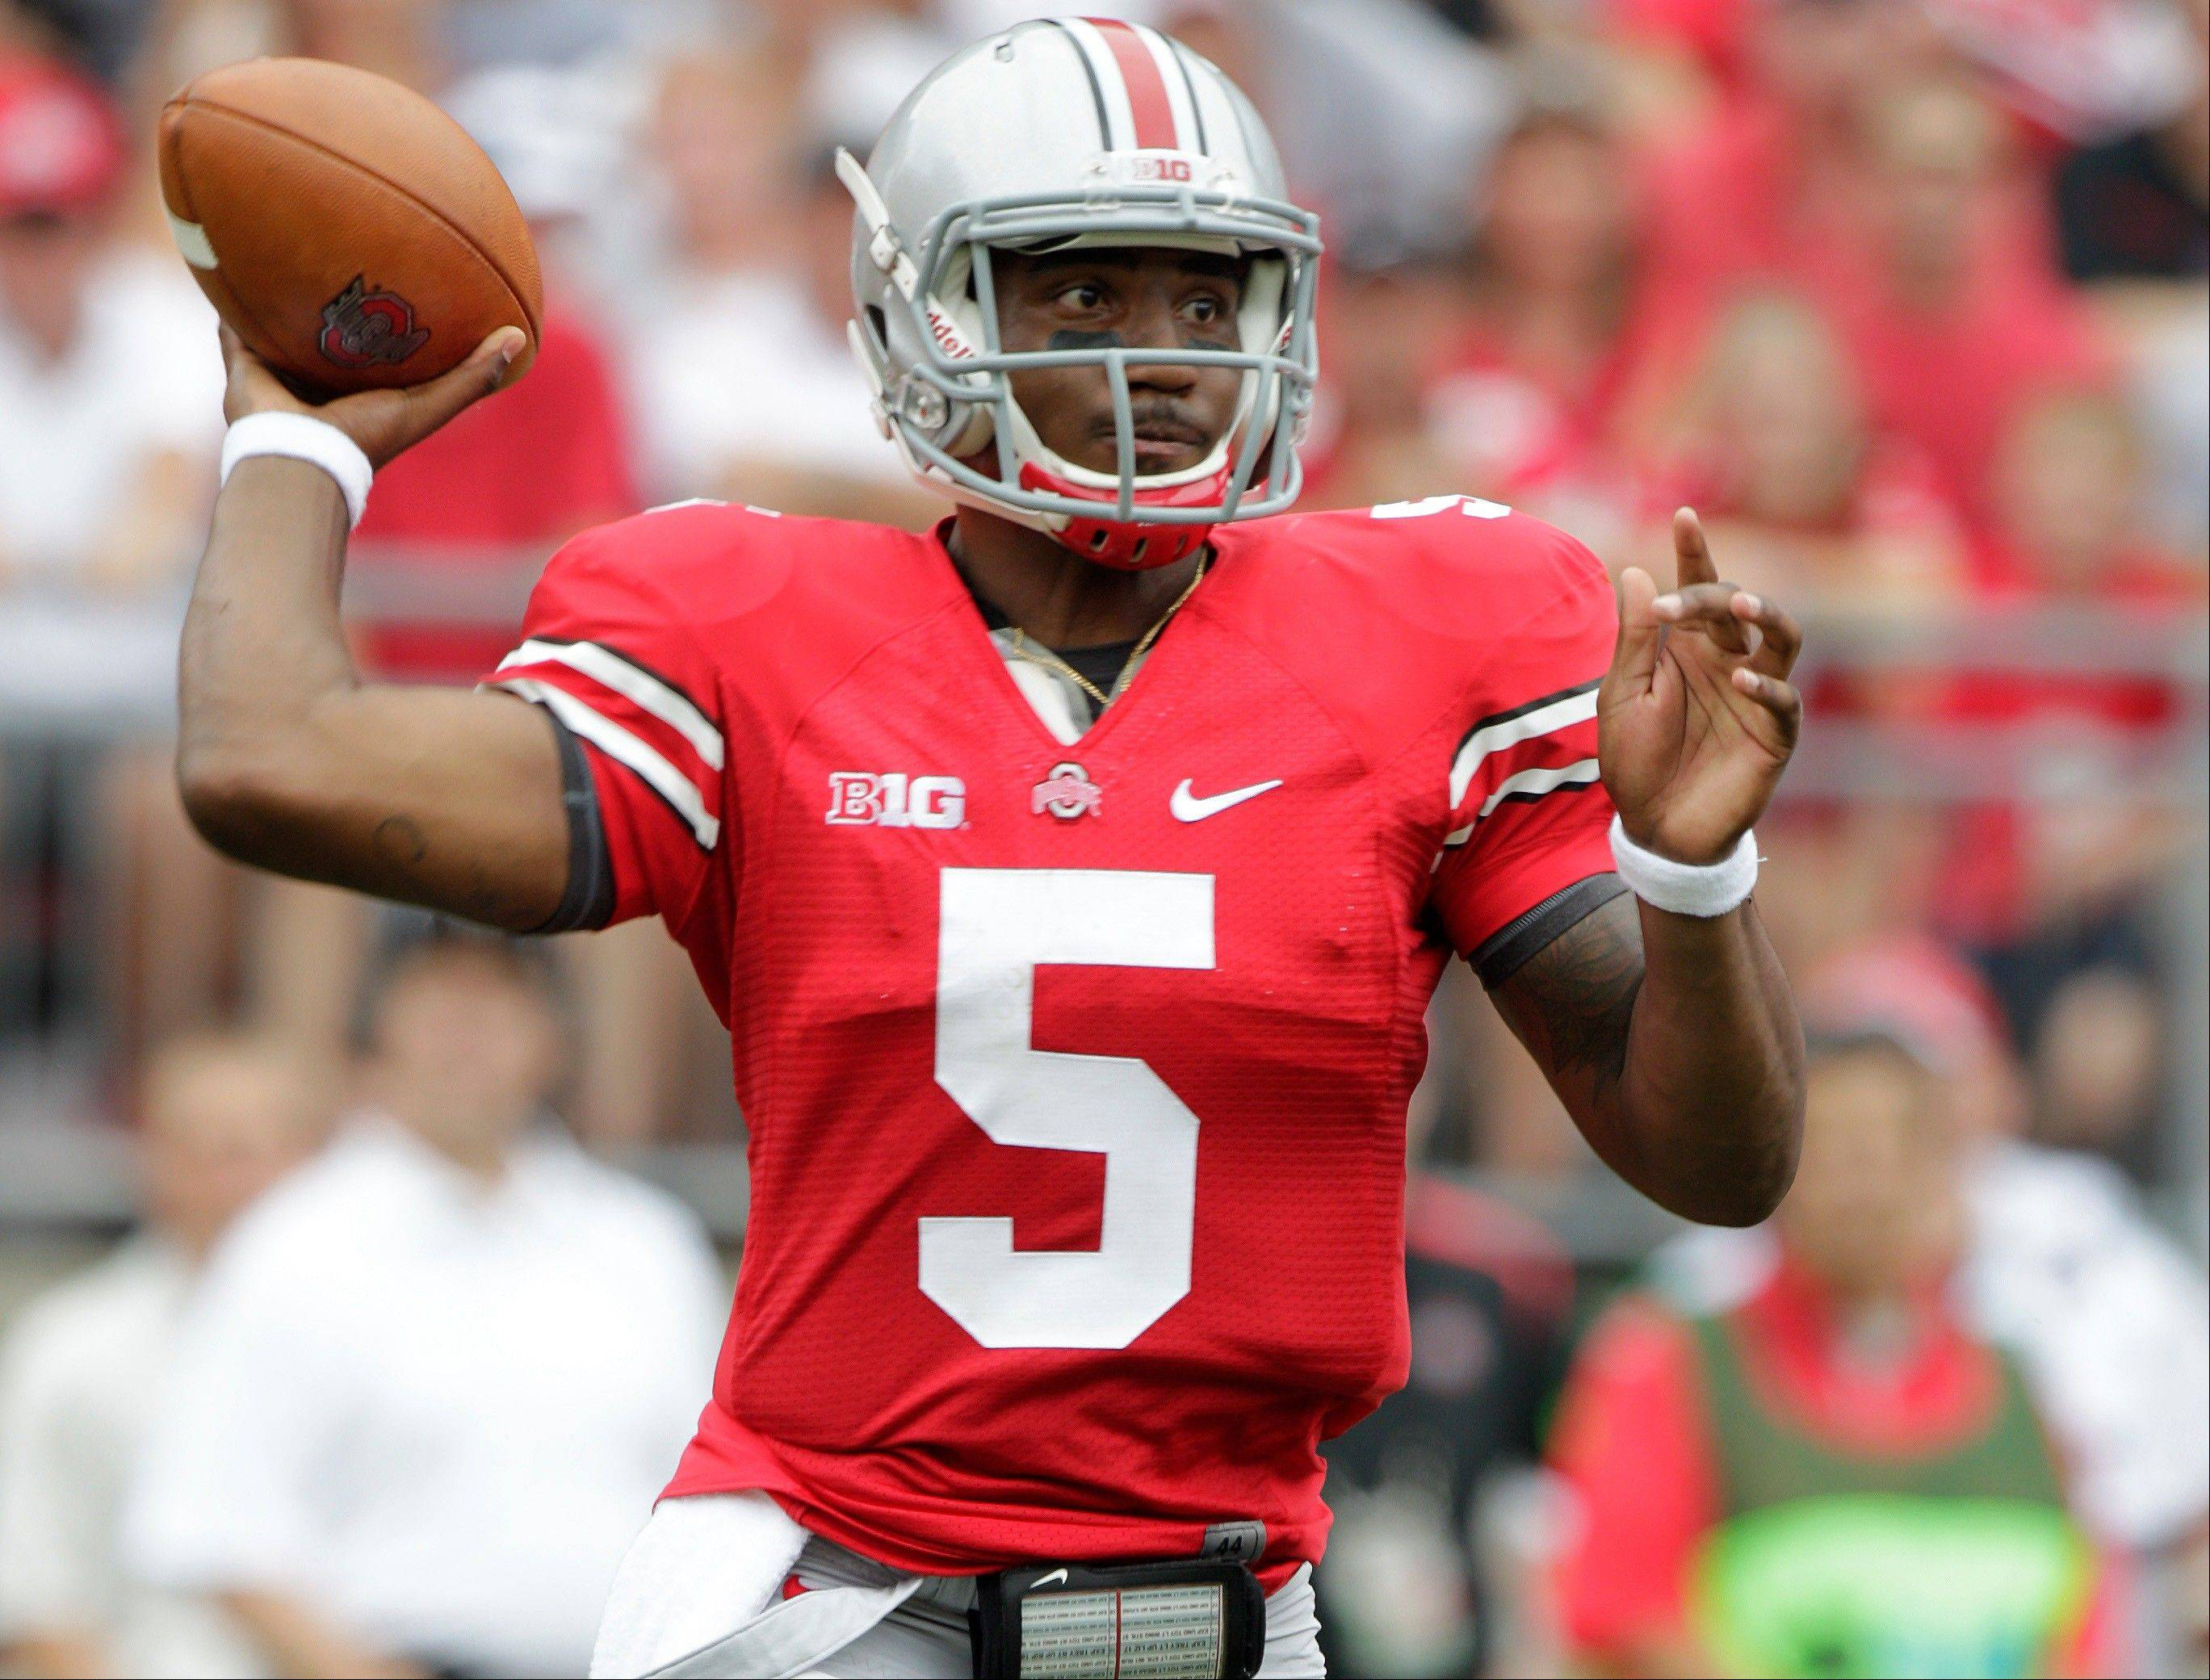 Ohio State quarterback Braxton Miller drops back to pass against Miami of Ohio during the first quarter last Saturday in Columbus, Ohio.